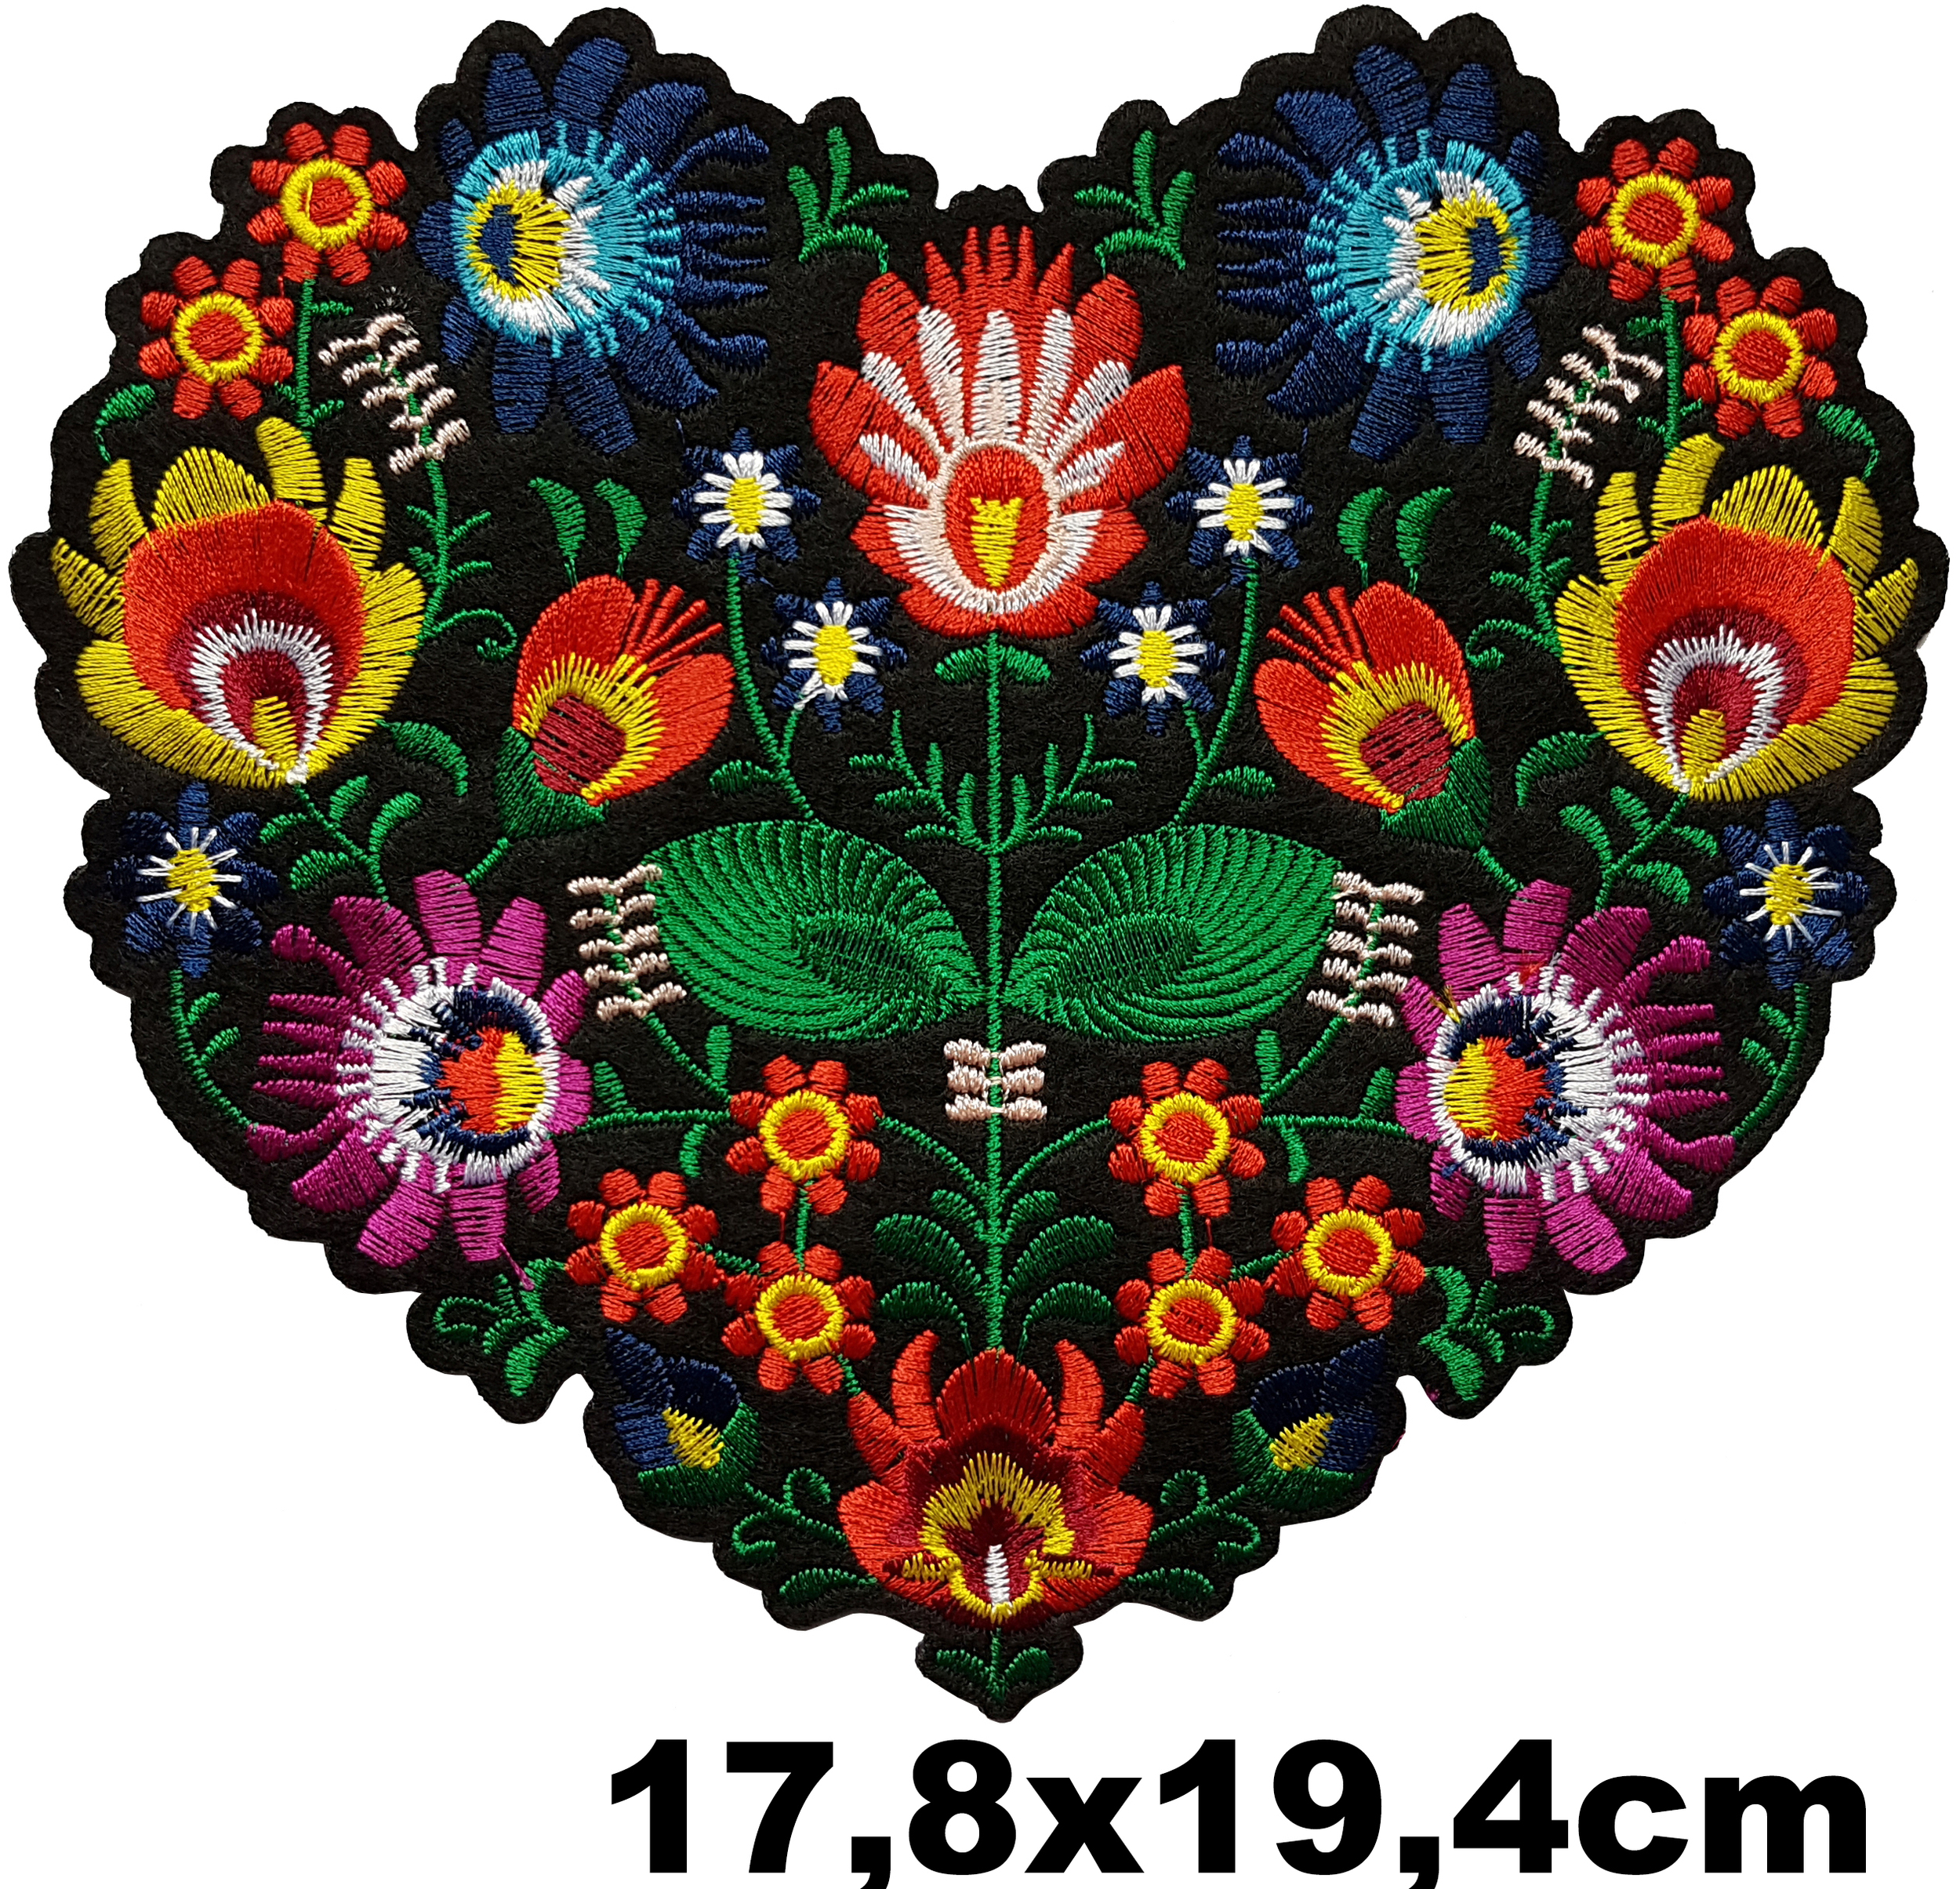 Grand Patch Thermocollant Coeur Fleurs